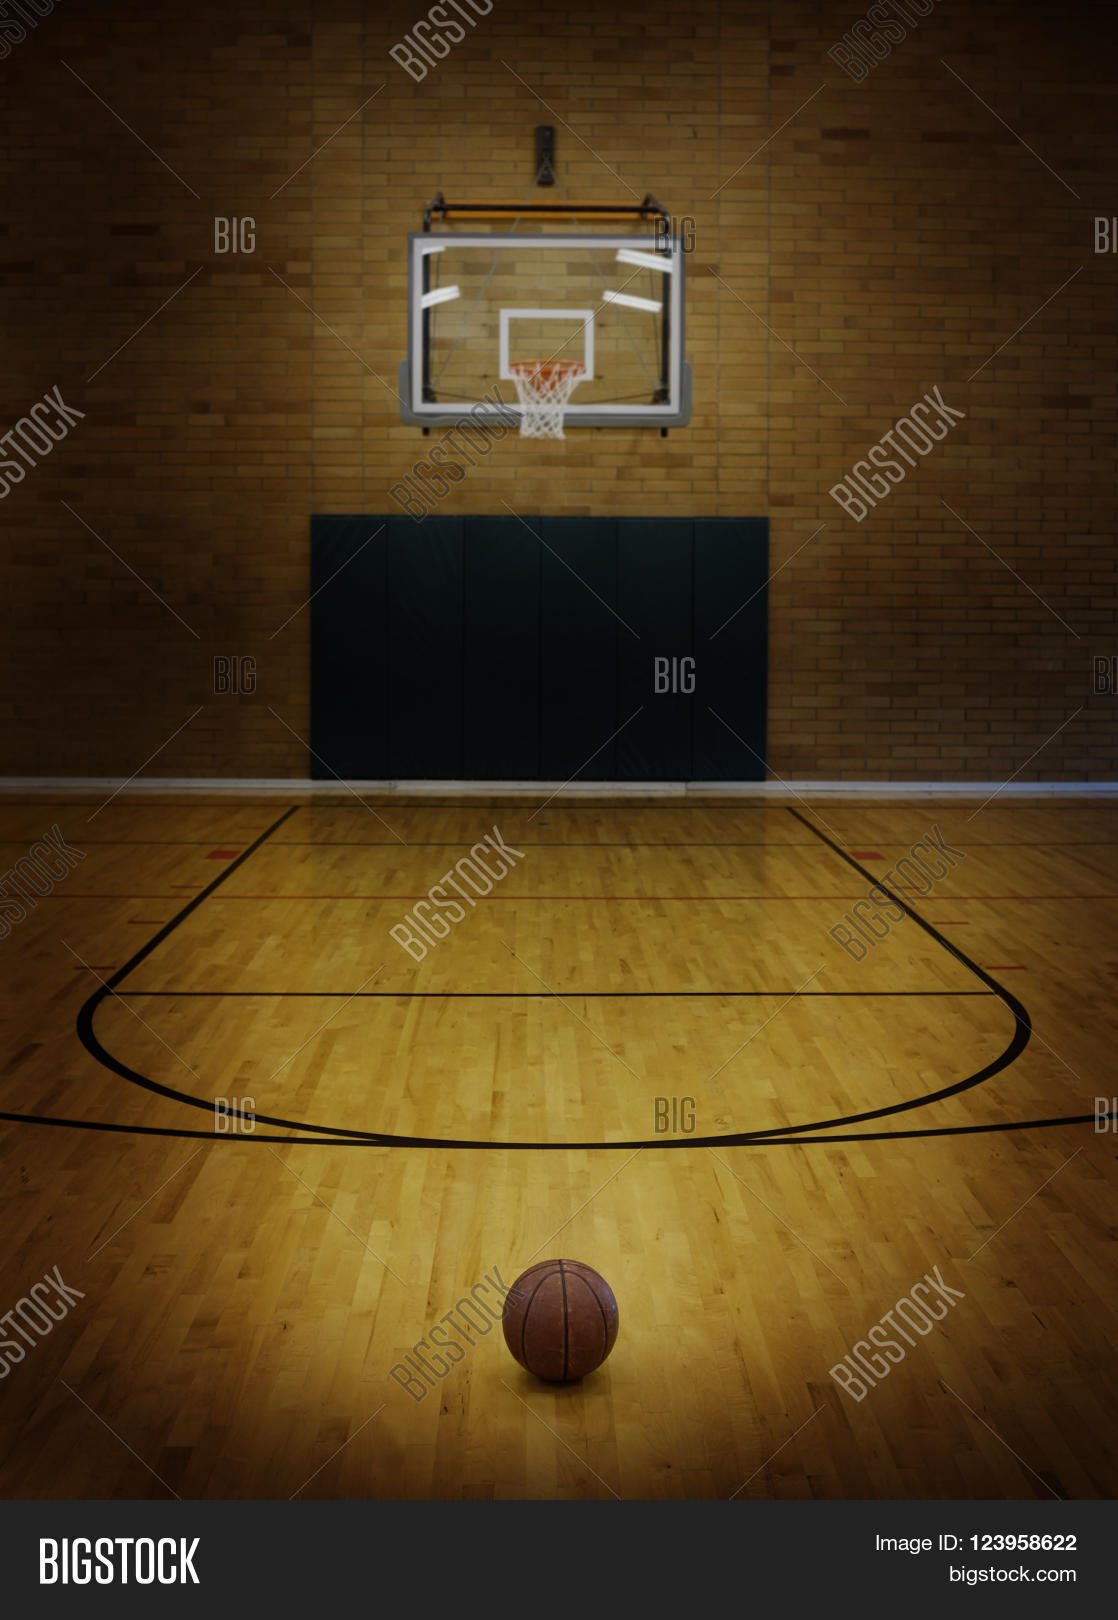 Basketball on floor of empty basketball court stock photo for How big is a basketball court